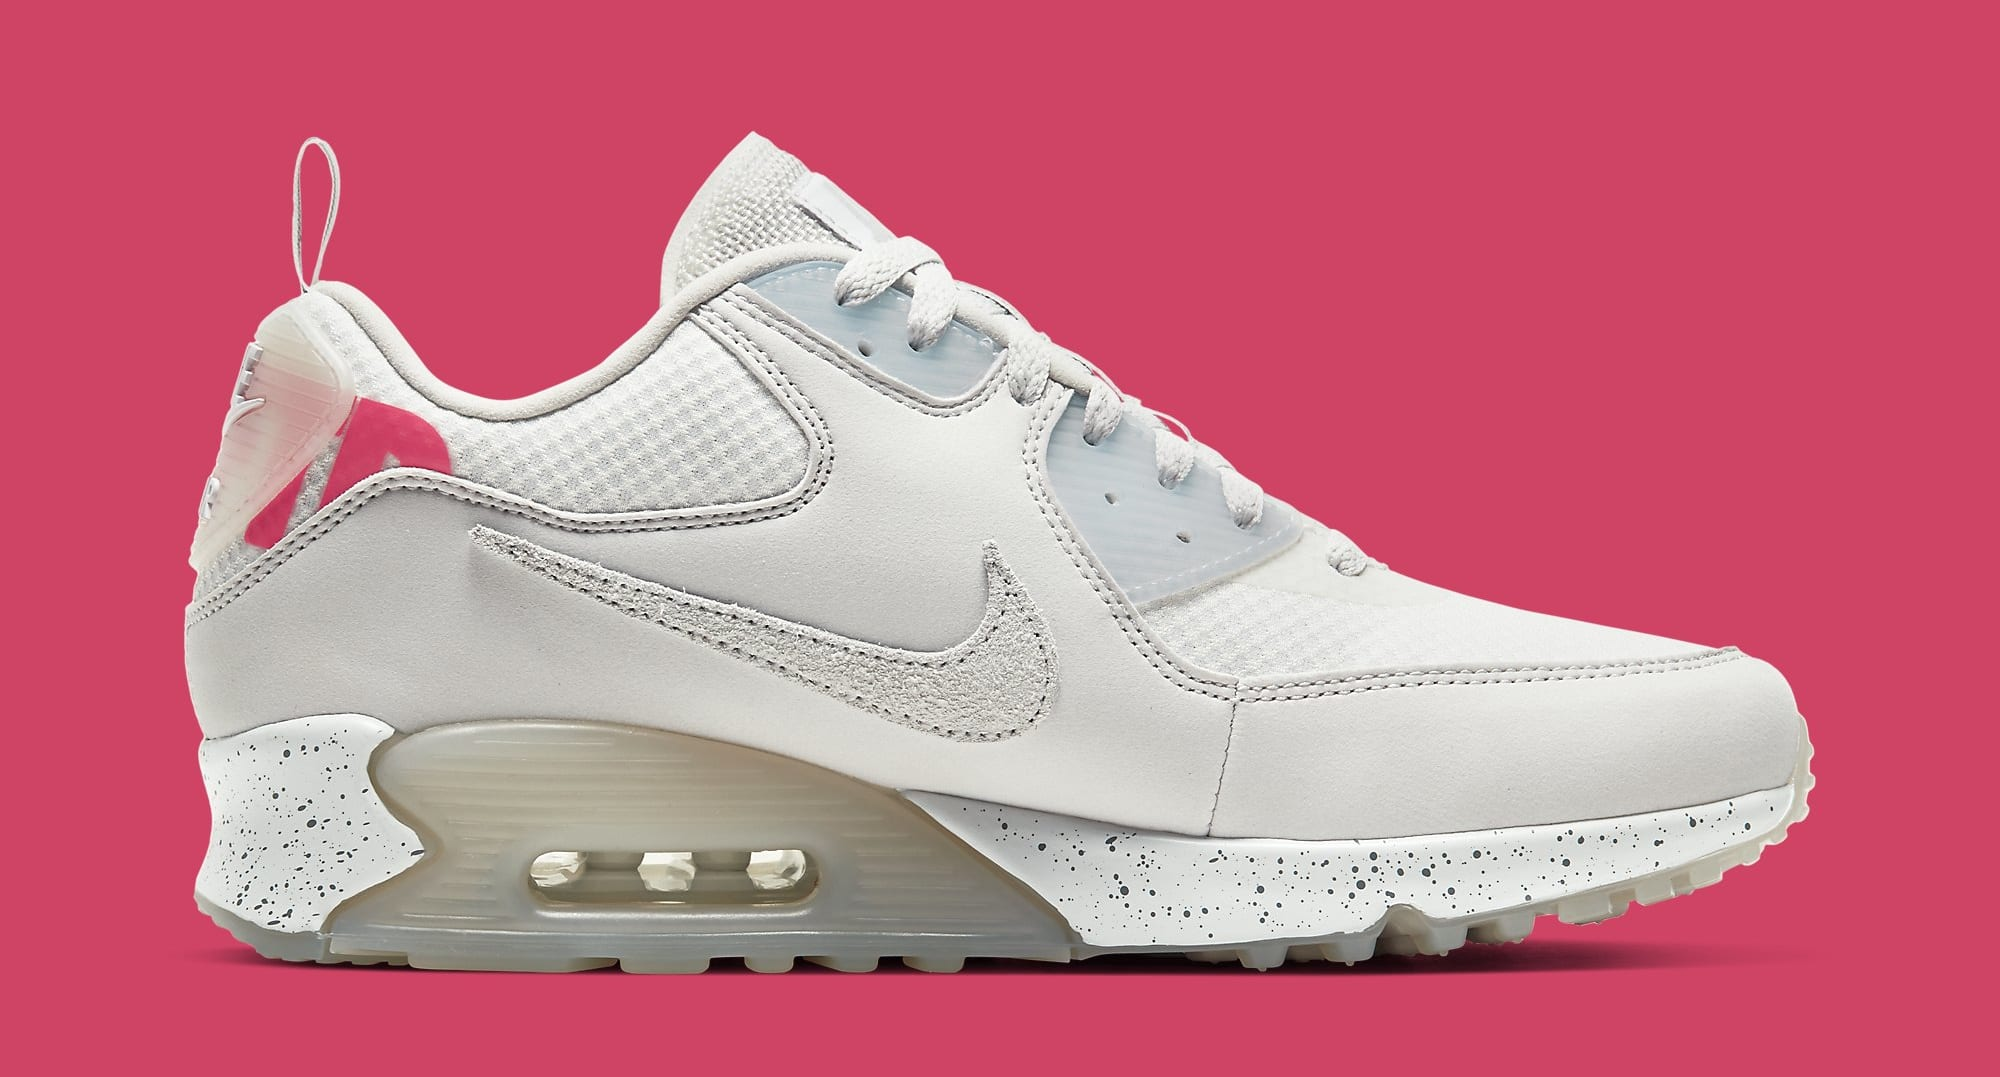 undefeated-nike-air-max-90-pure-platinum-cq2289-001-medial